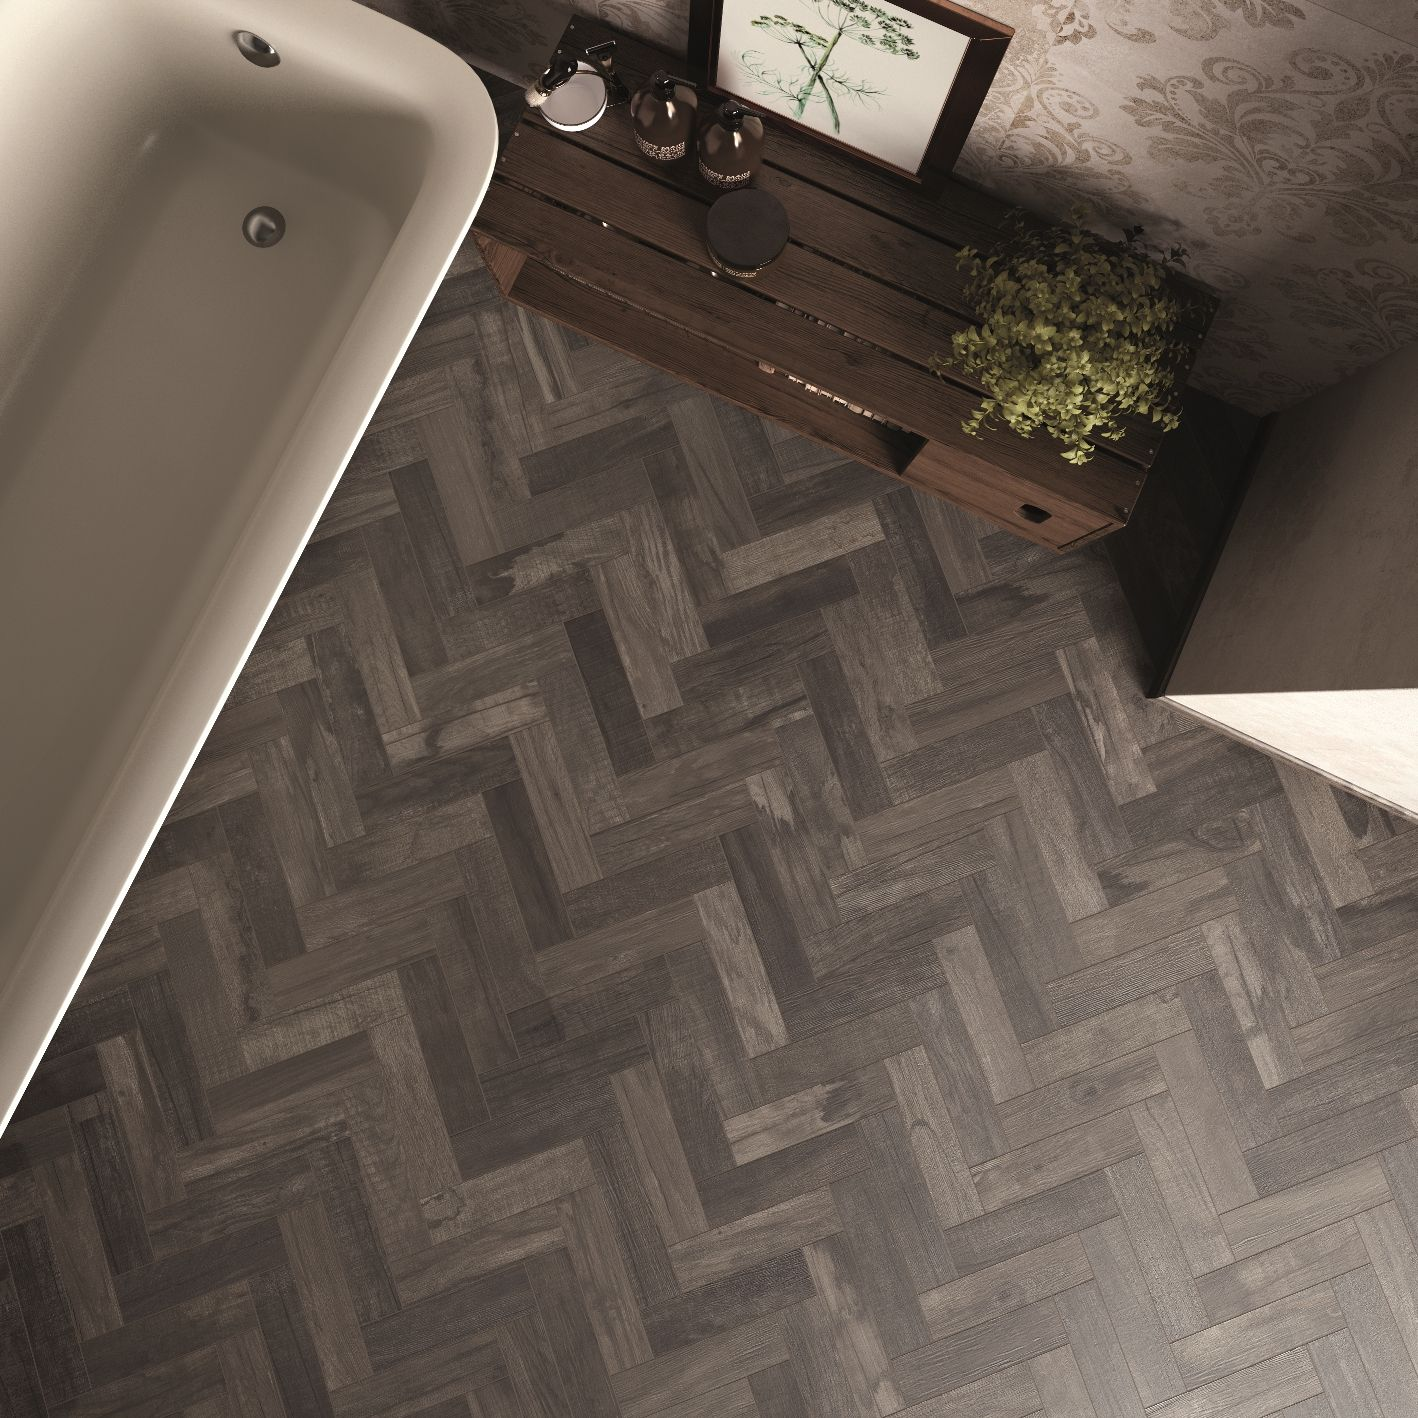 Da questa immagine si apprezza ogni dettaglio del pavimento porcelain stoneware wallfloor tiles with wood effect dolphin by abk industrie ceramicheabk industrie ceramiche s dailygadgetfo Choice Image